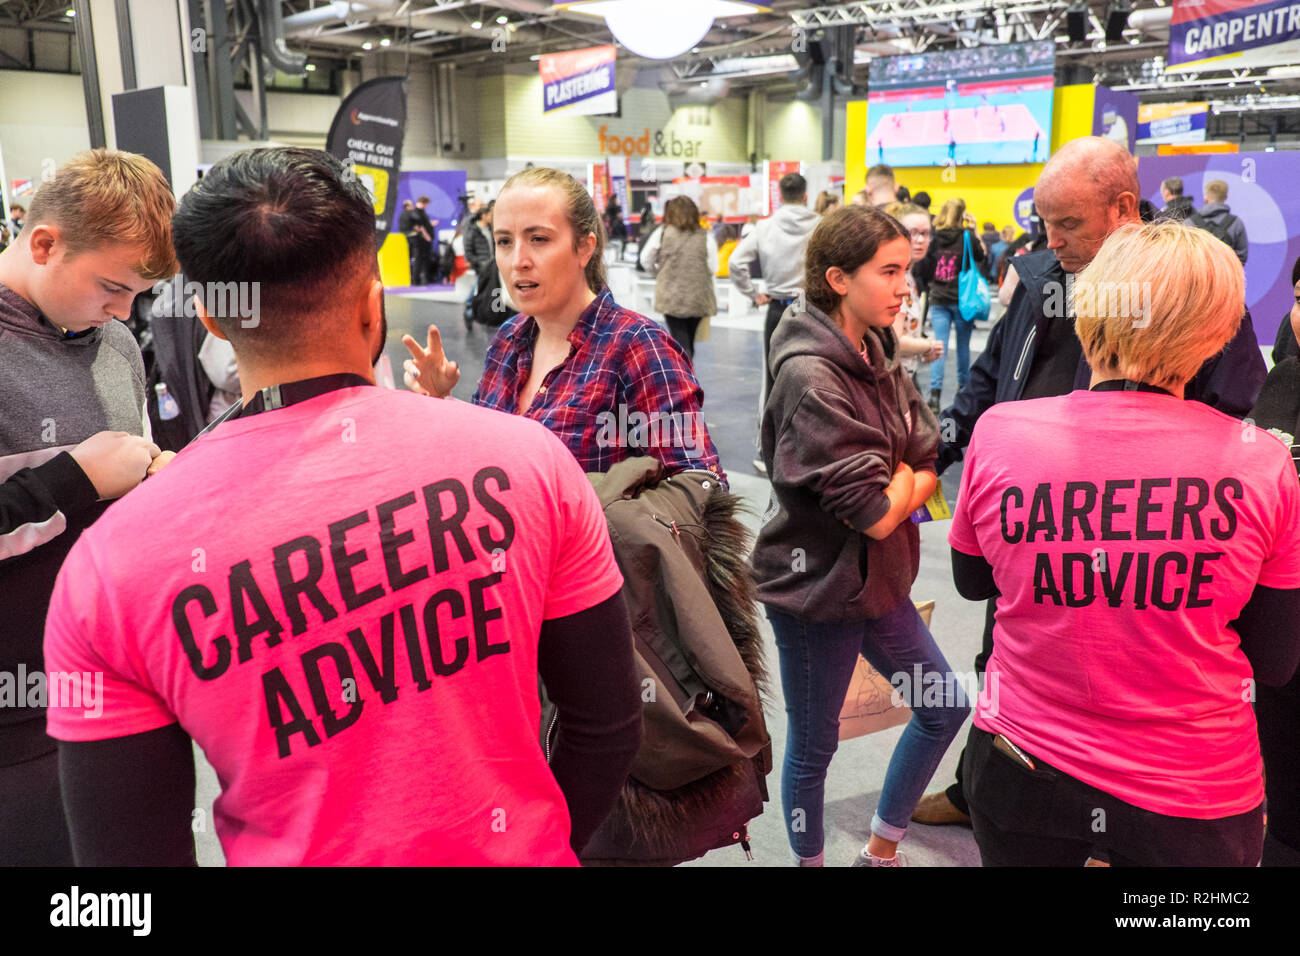 Apprenticeships High Resolution Stock Photography And Images Alamy